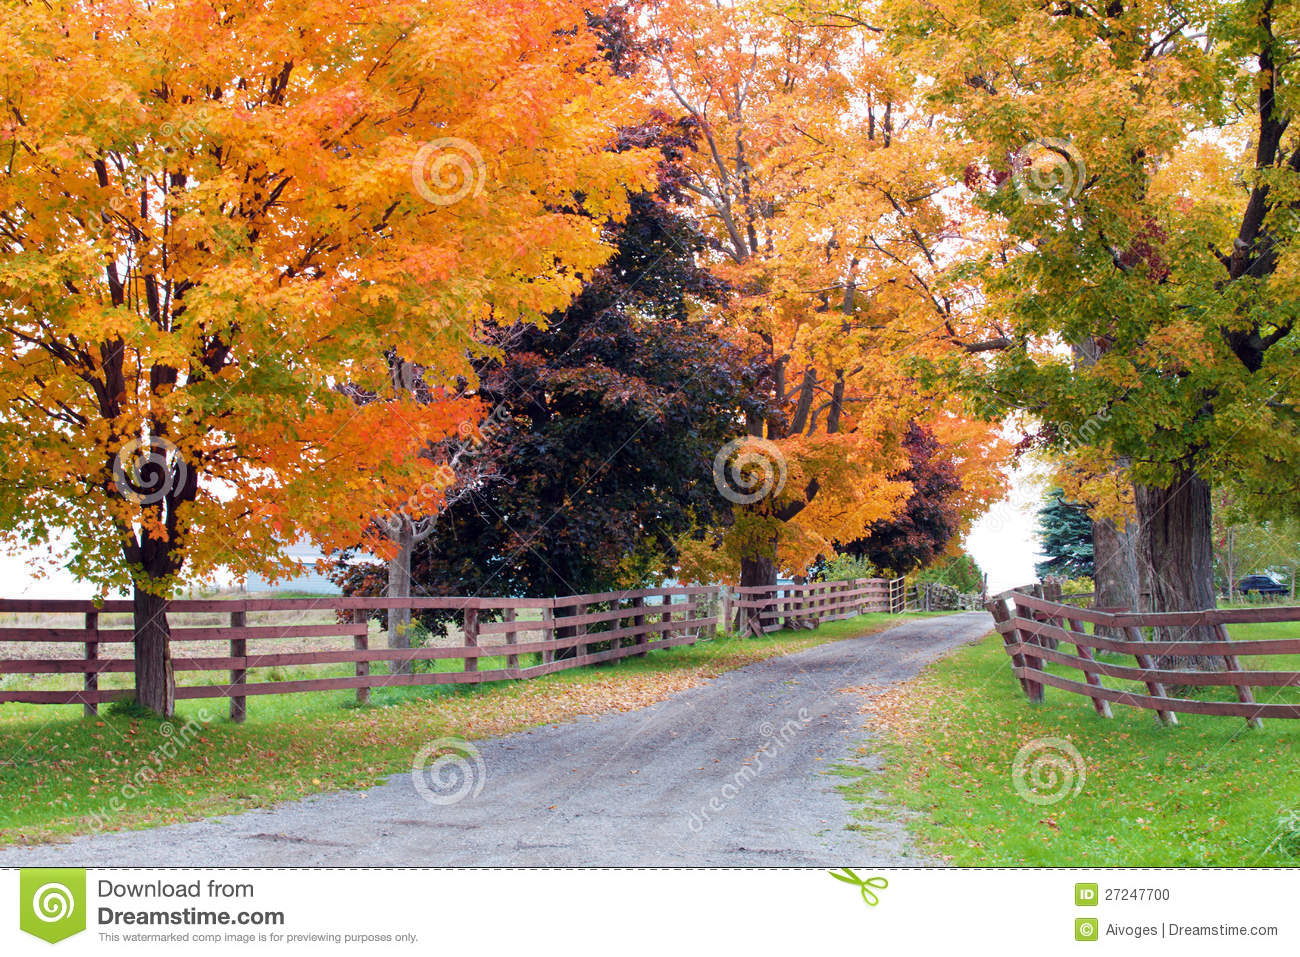 Beautiful Country Road In Autumn Foliage Stock Photo - Image: 27247700